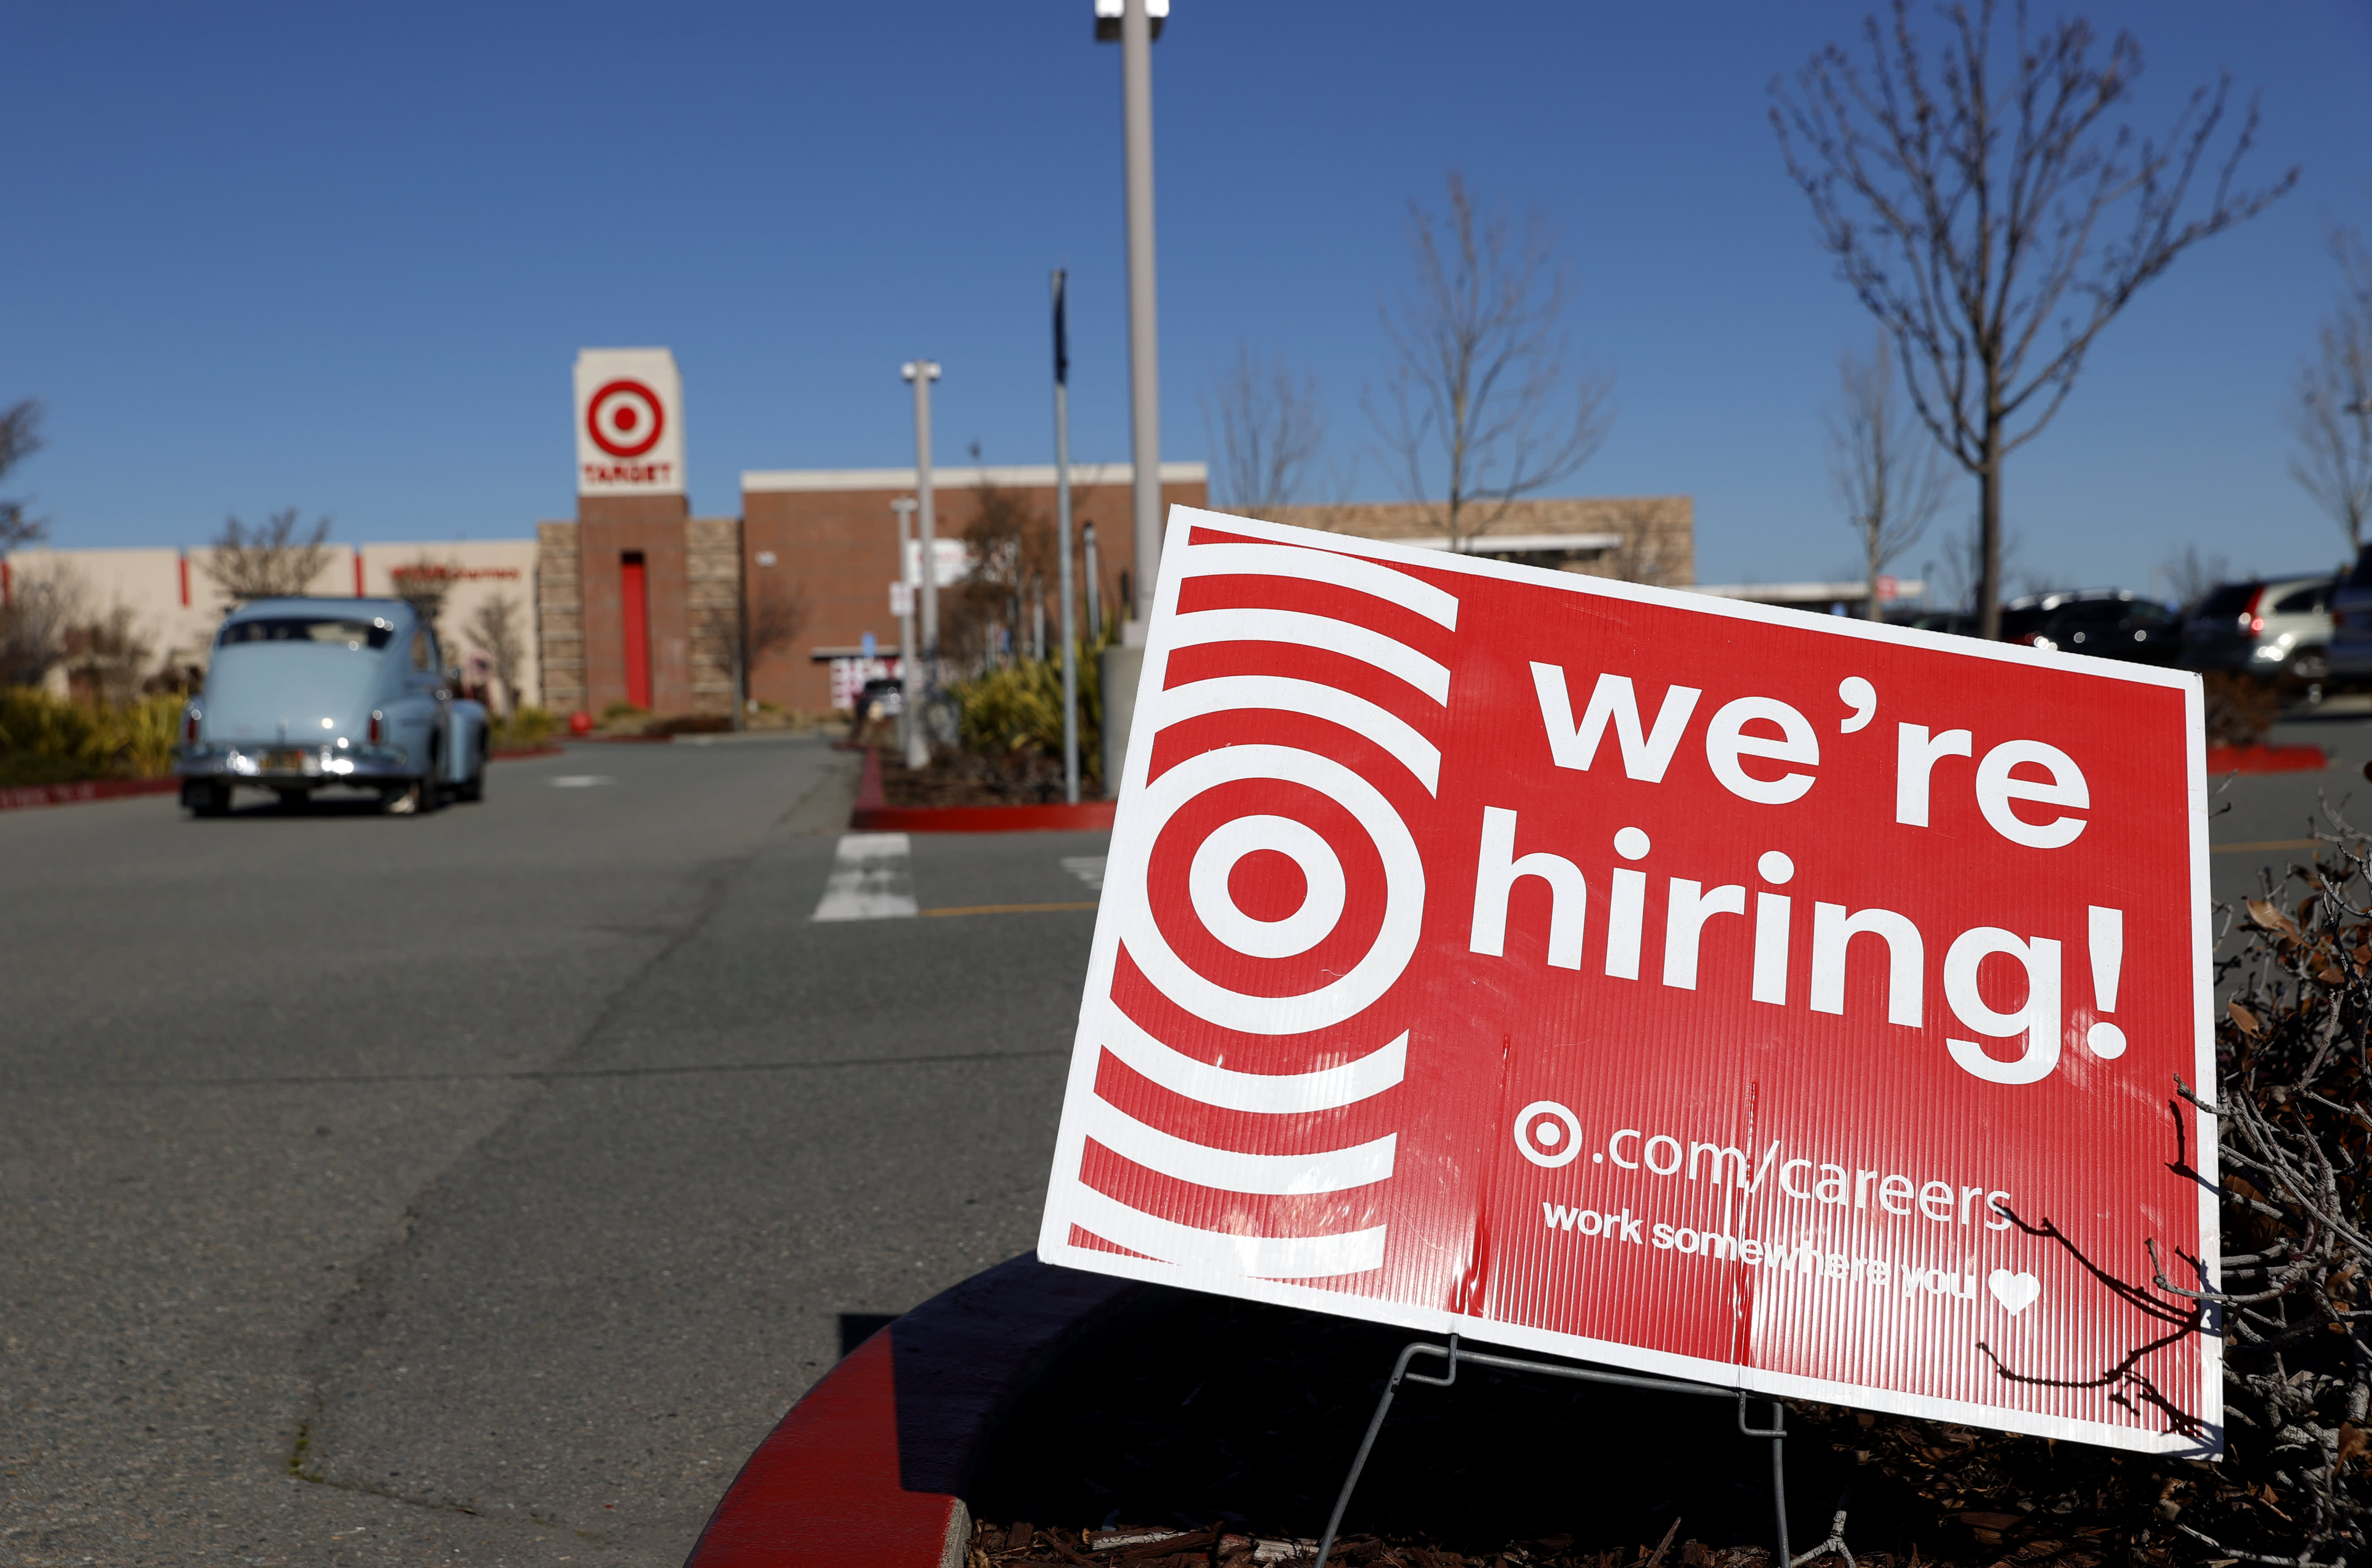 Job openings increased toward the end of 2020, but a big employment gap remains - CNBC